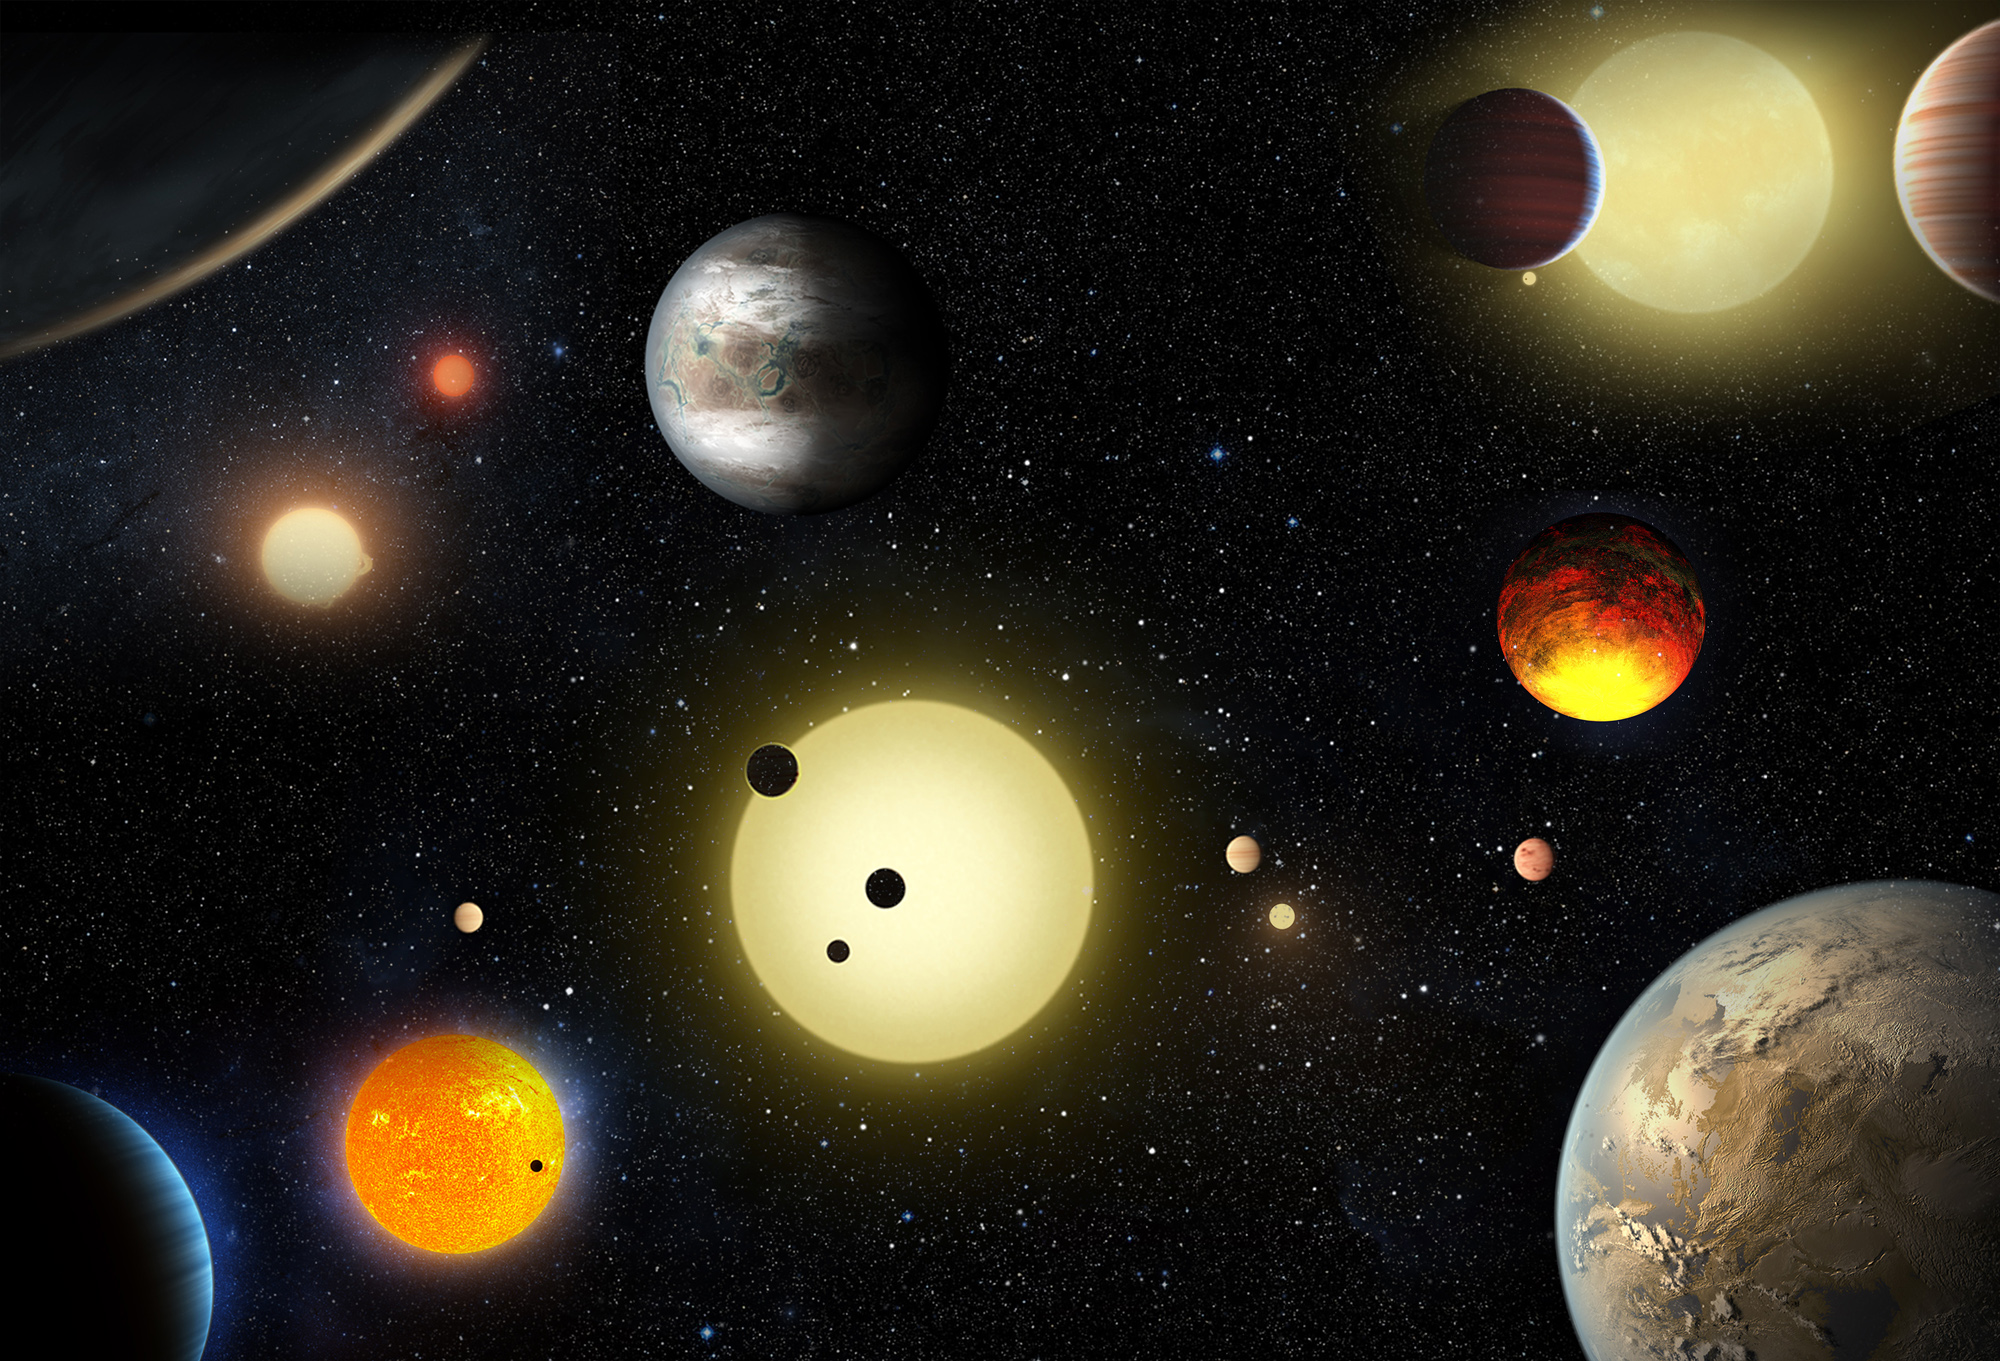 NASA's prolific Kepler Space Telescope has added 1,284 more confirmed exoplanets to its list of discoveries in what scientists called the biggest haul yet. This artist's illustration depicts some of Kepler's notable exoplanet finds over the years.